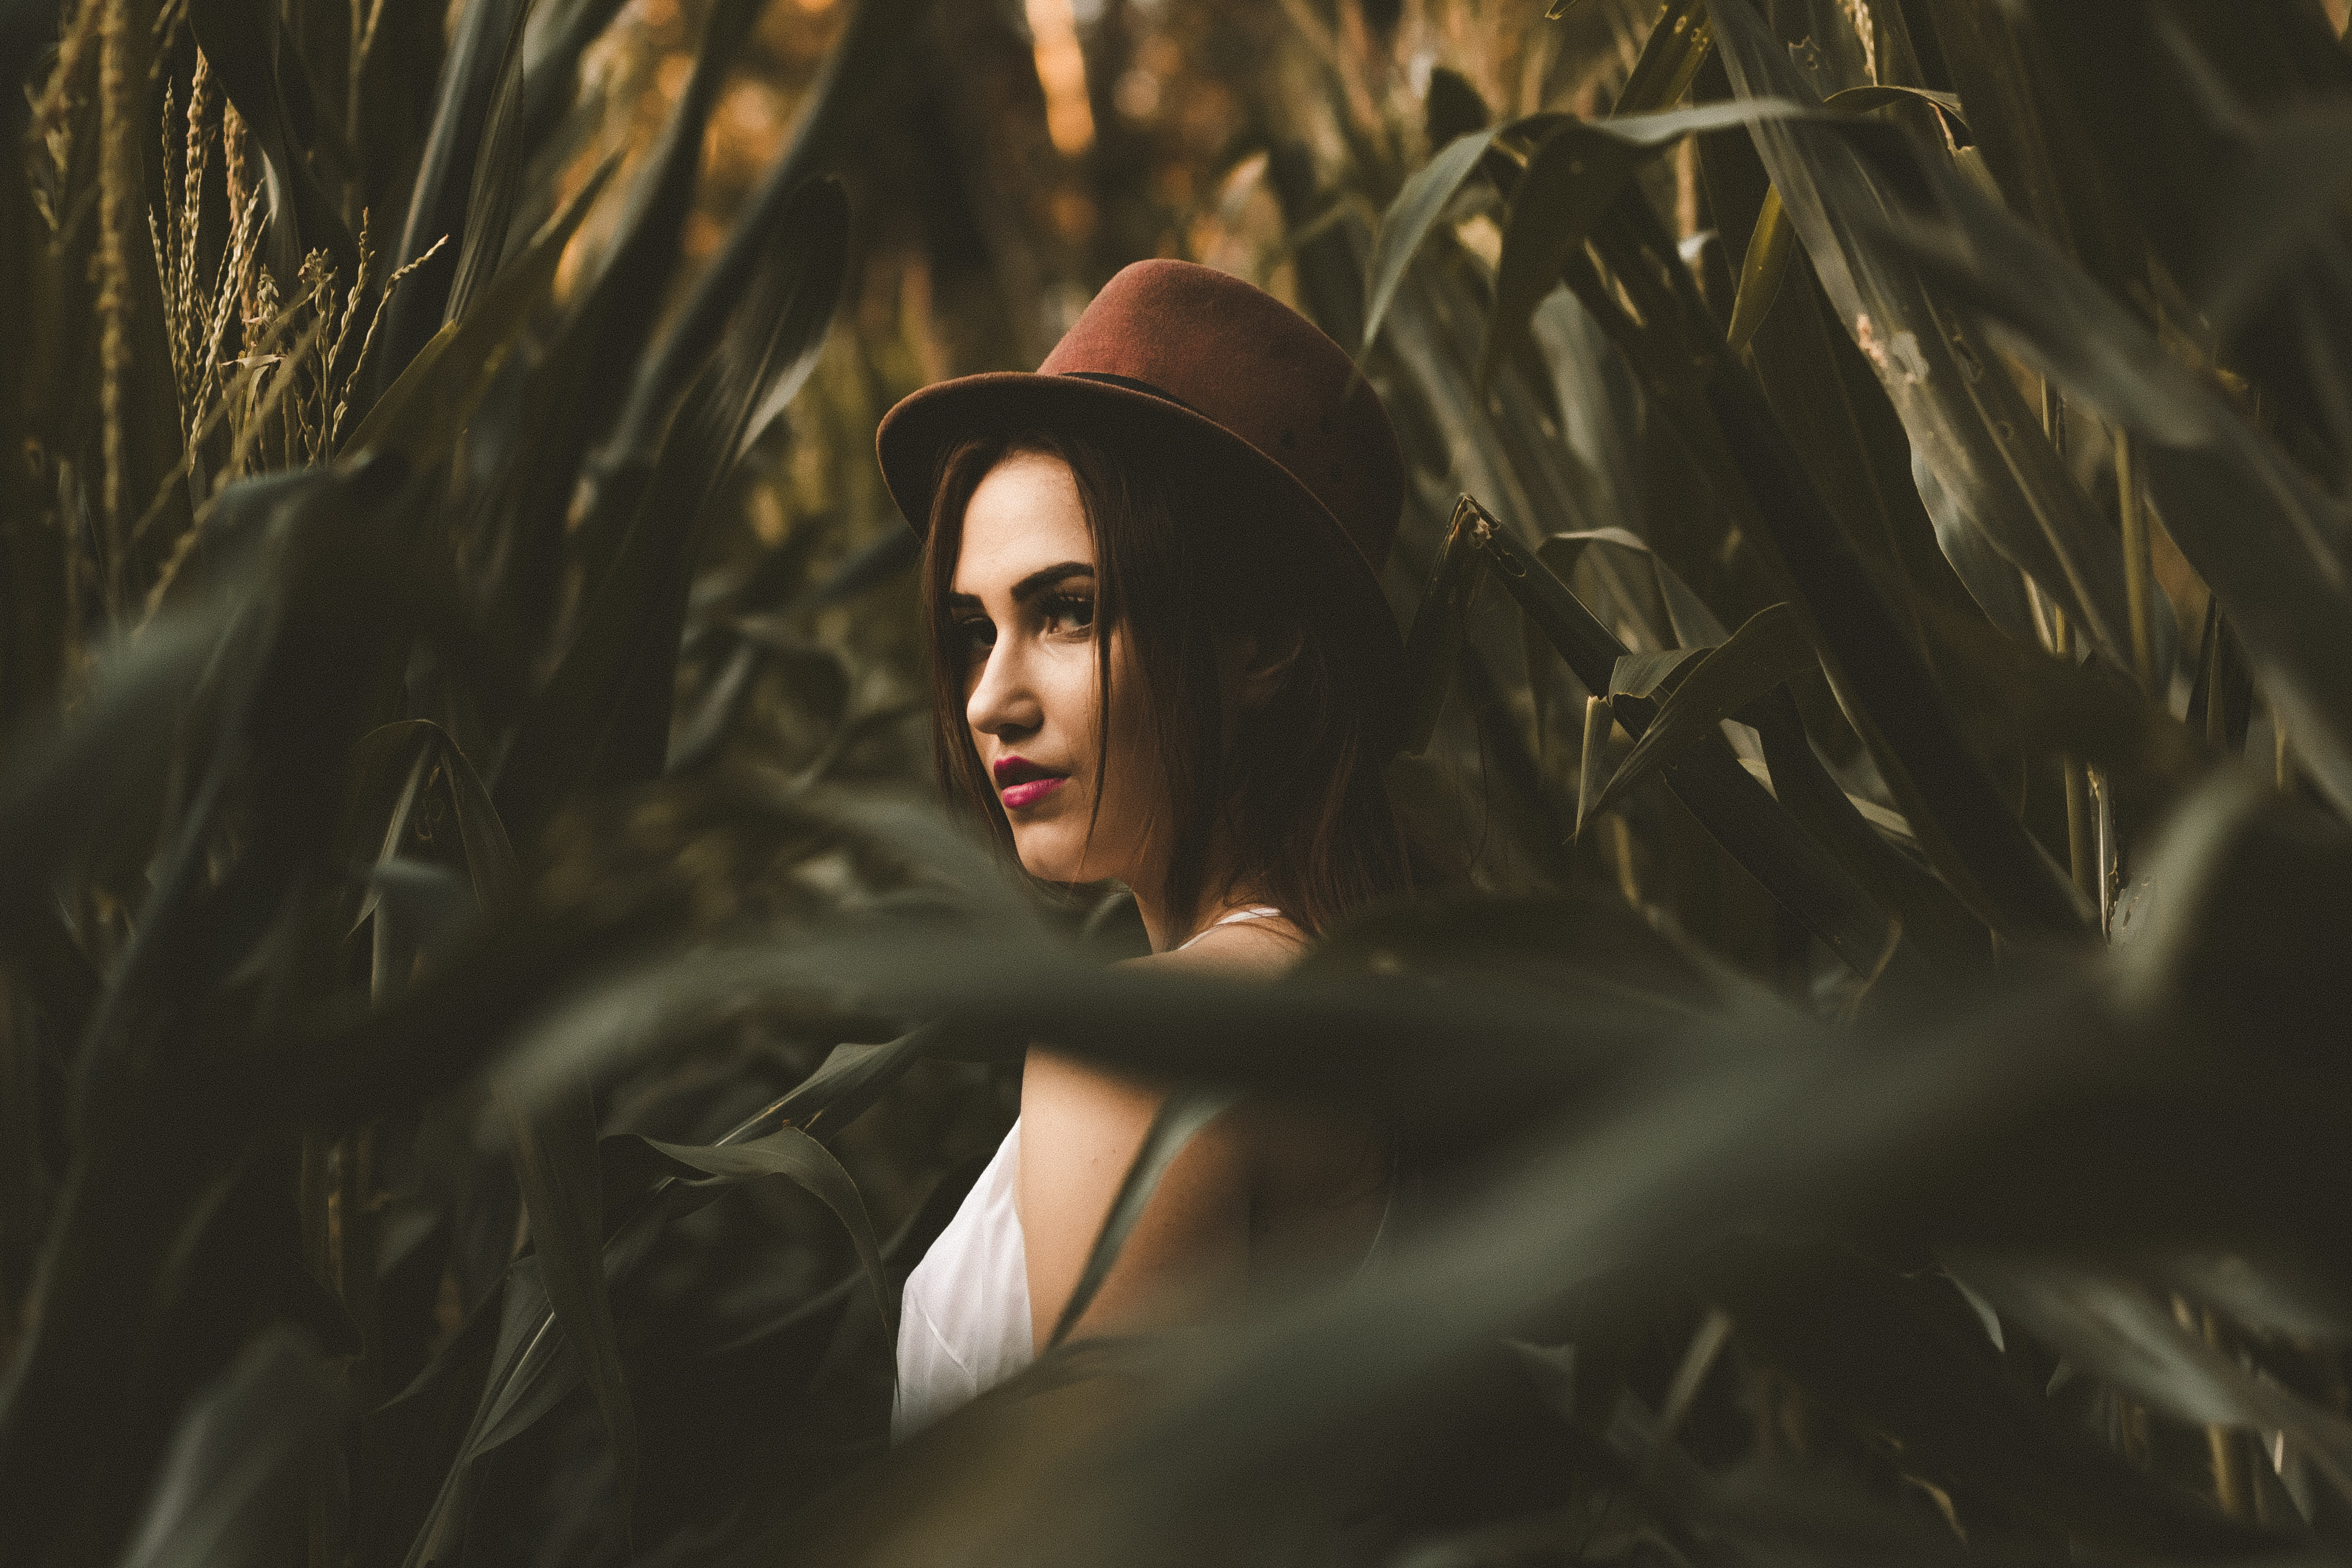 woman in white shirt with hat standing on corn field